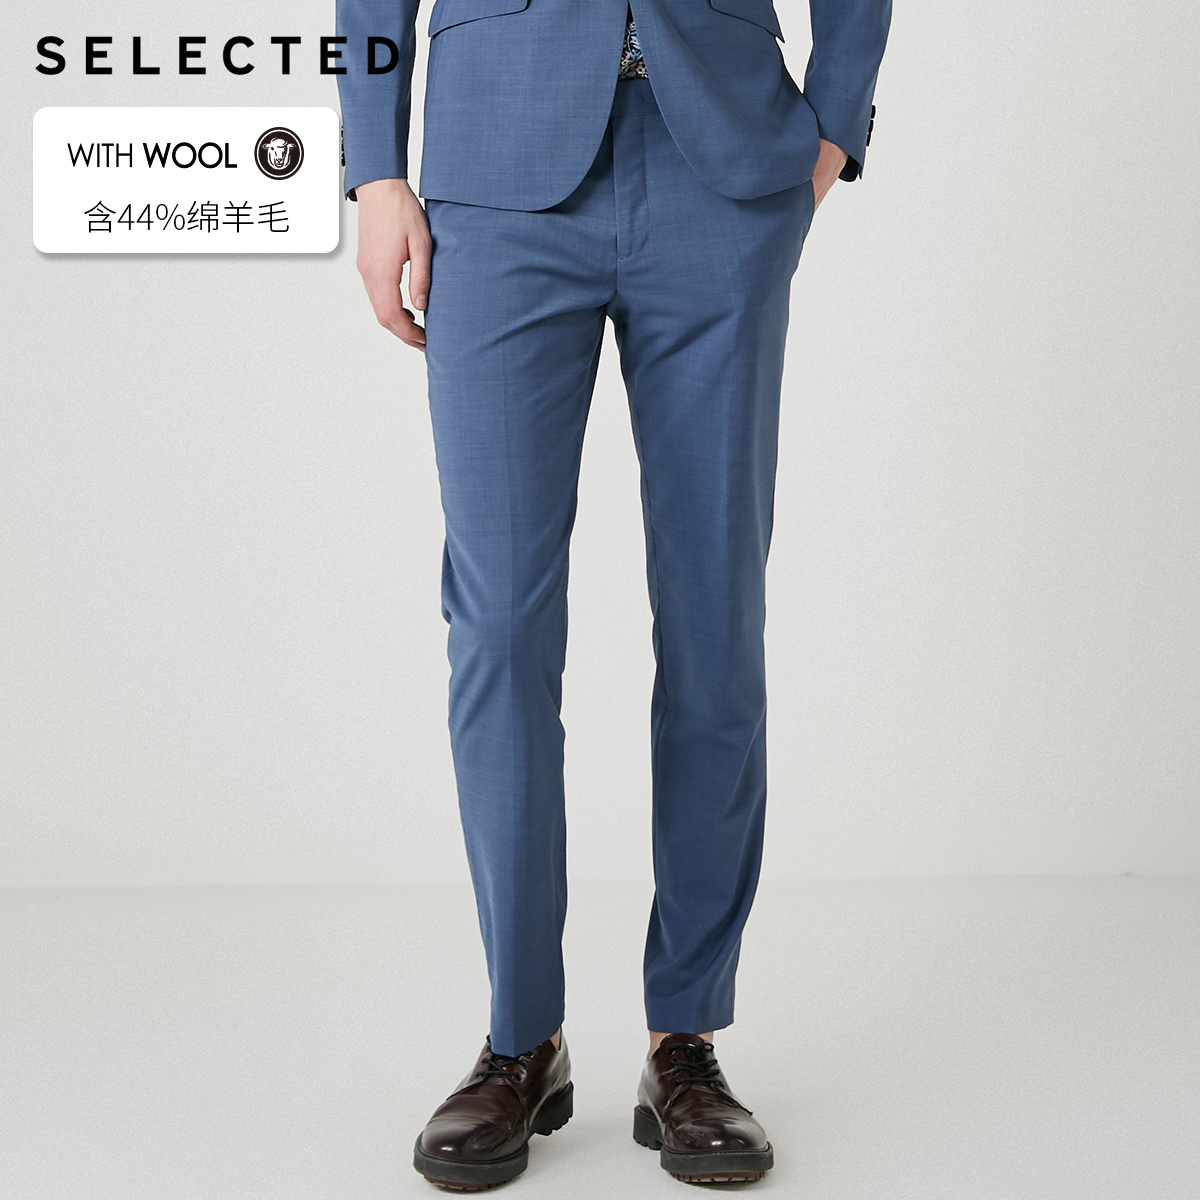 SELECTED Men's Slim Fit Woolen Suit Pants T|41926B503